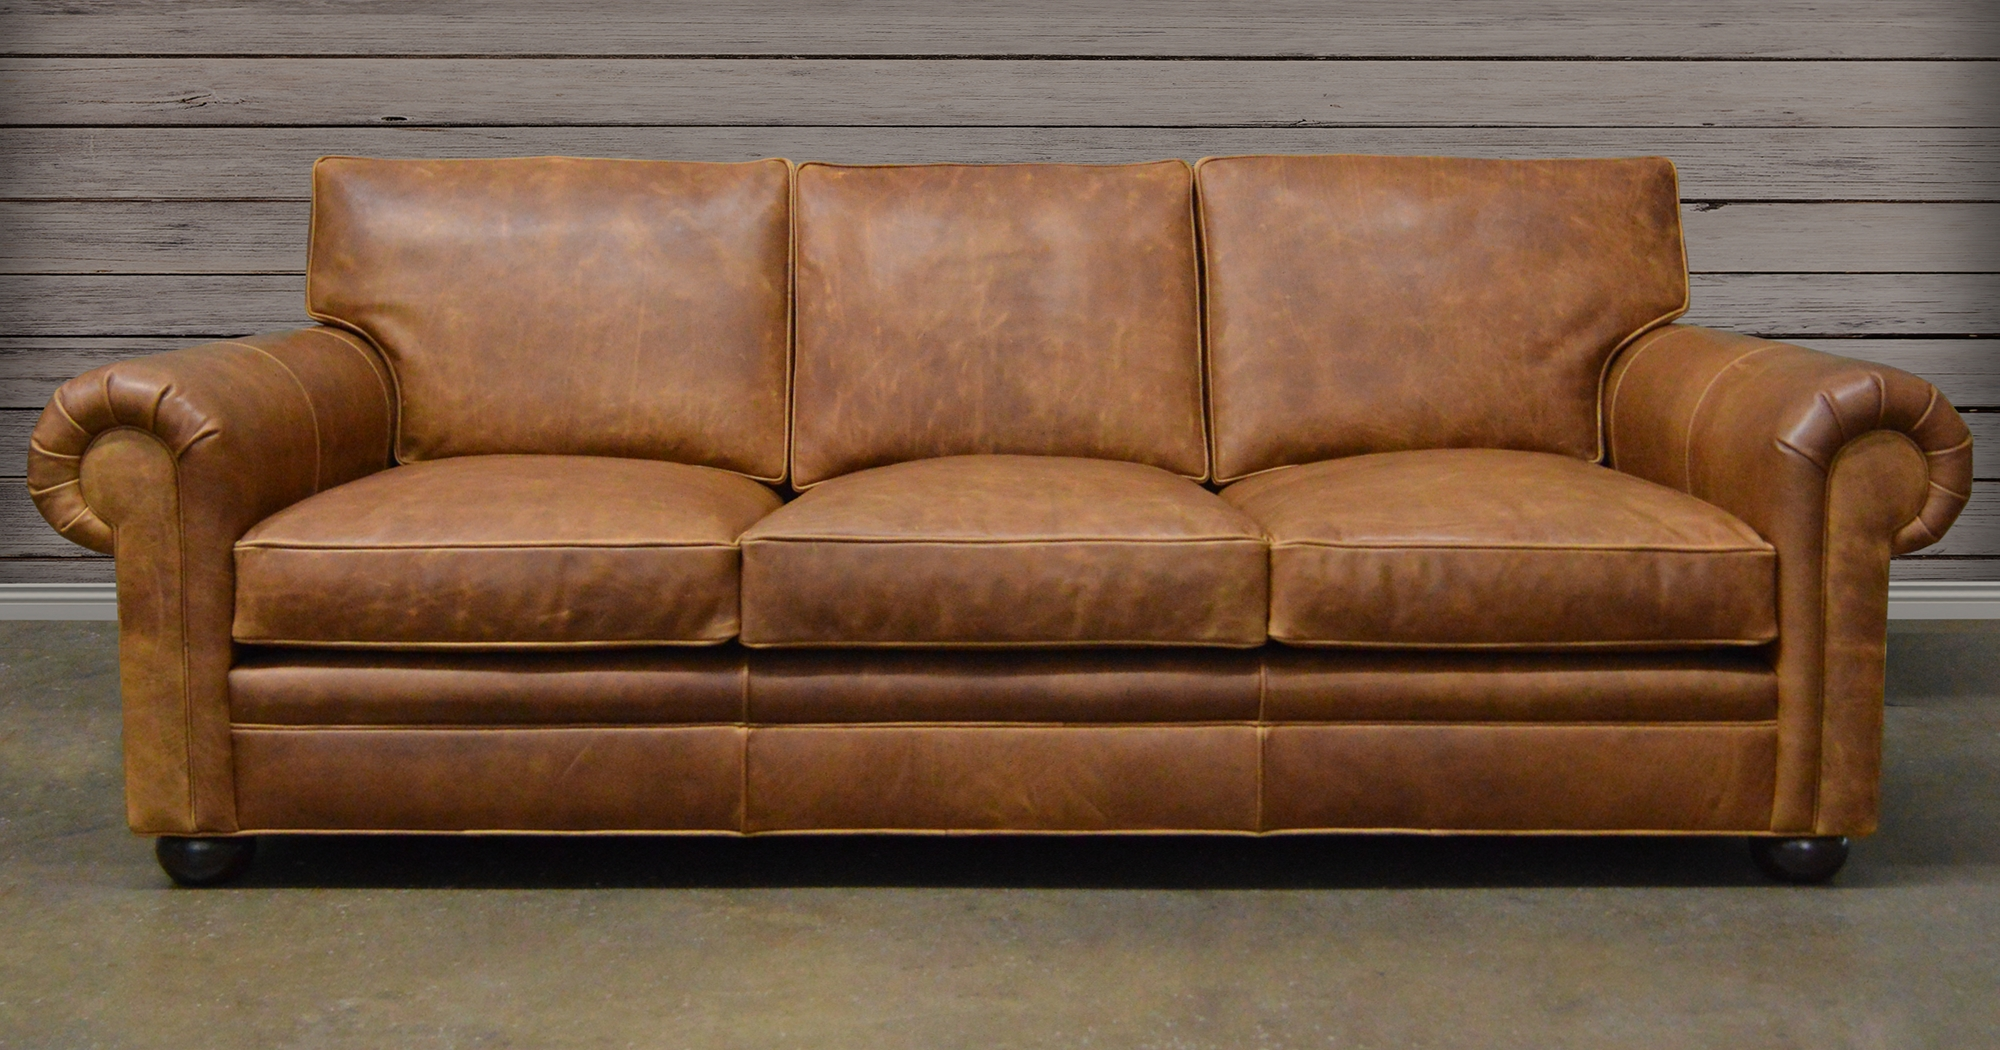 Sofa Concepts Light Brown Leather 100 Sofas Ashley Throughout